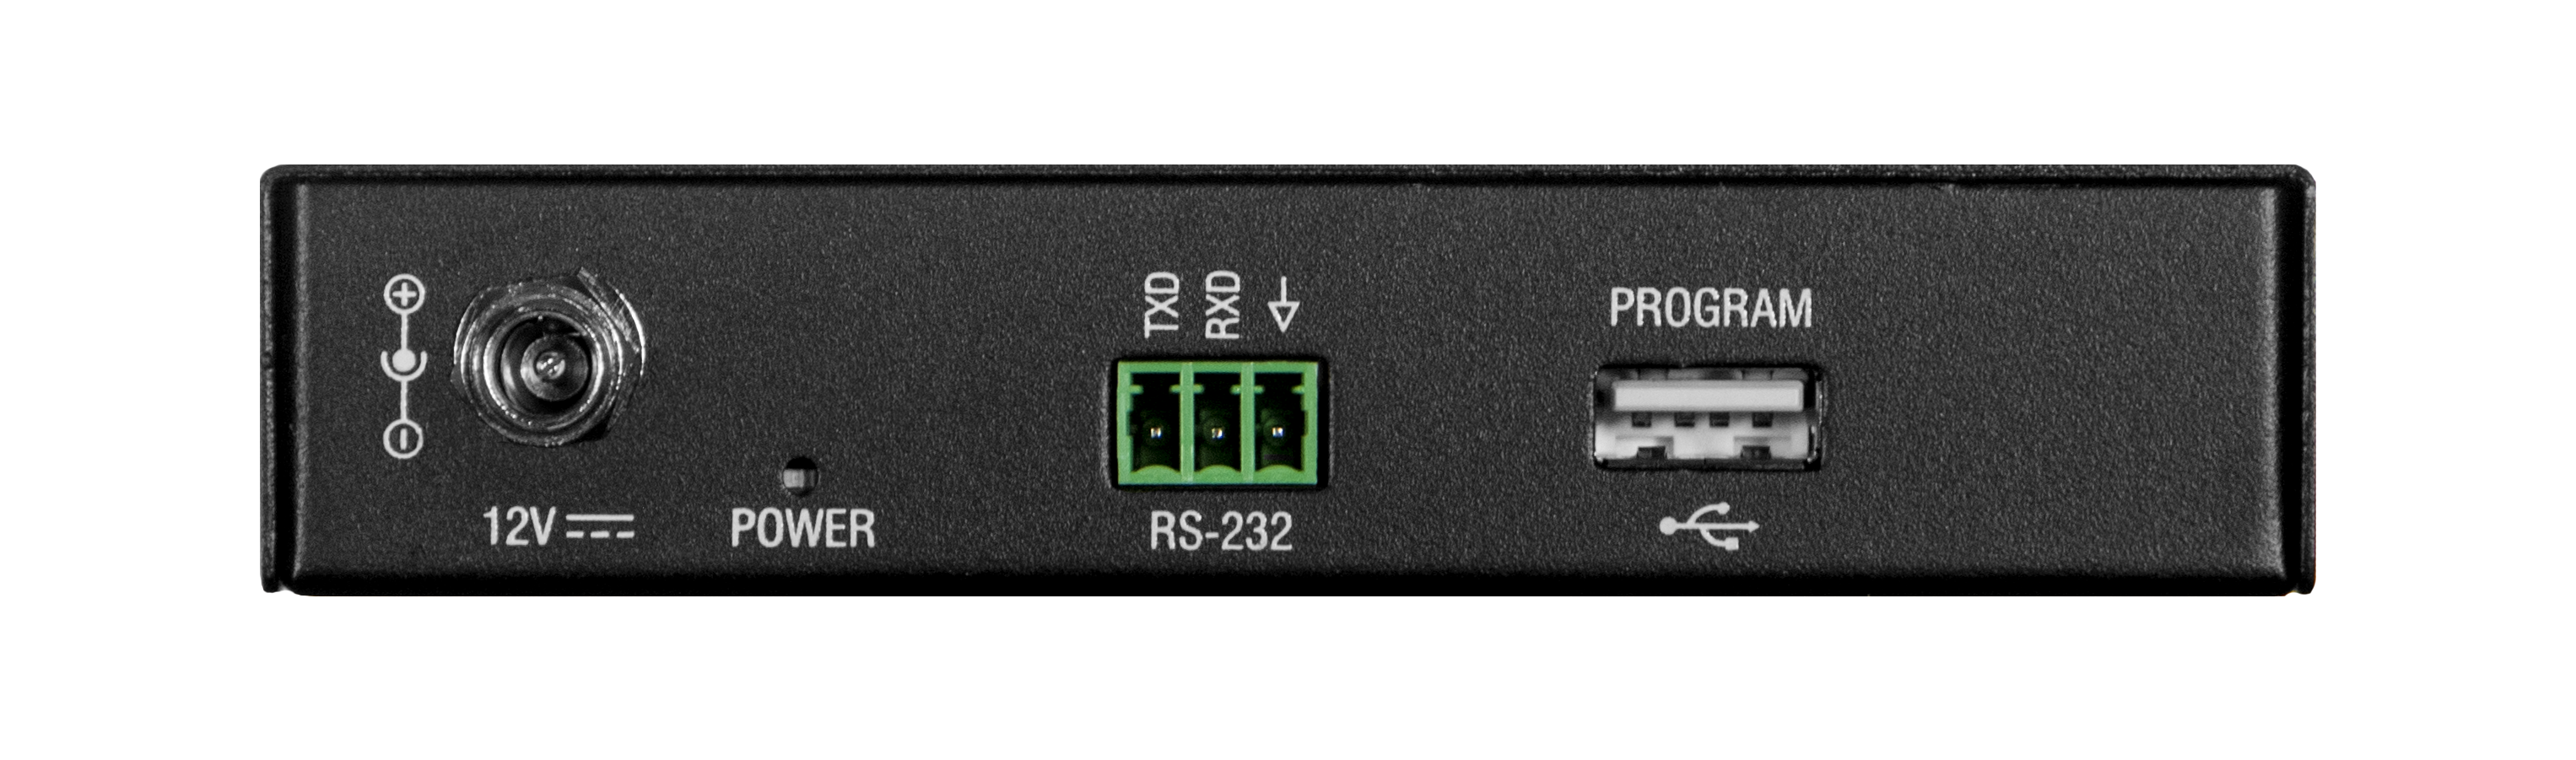 SCL-1 Video Scaler | AMX Audio Video Control Systems